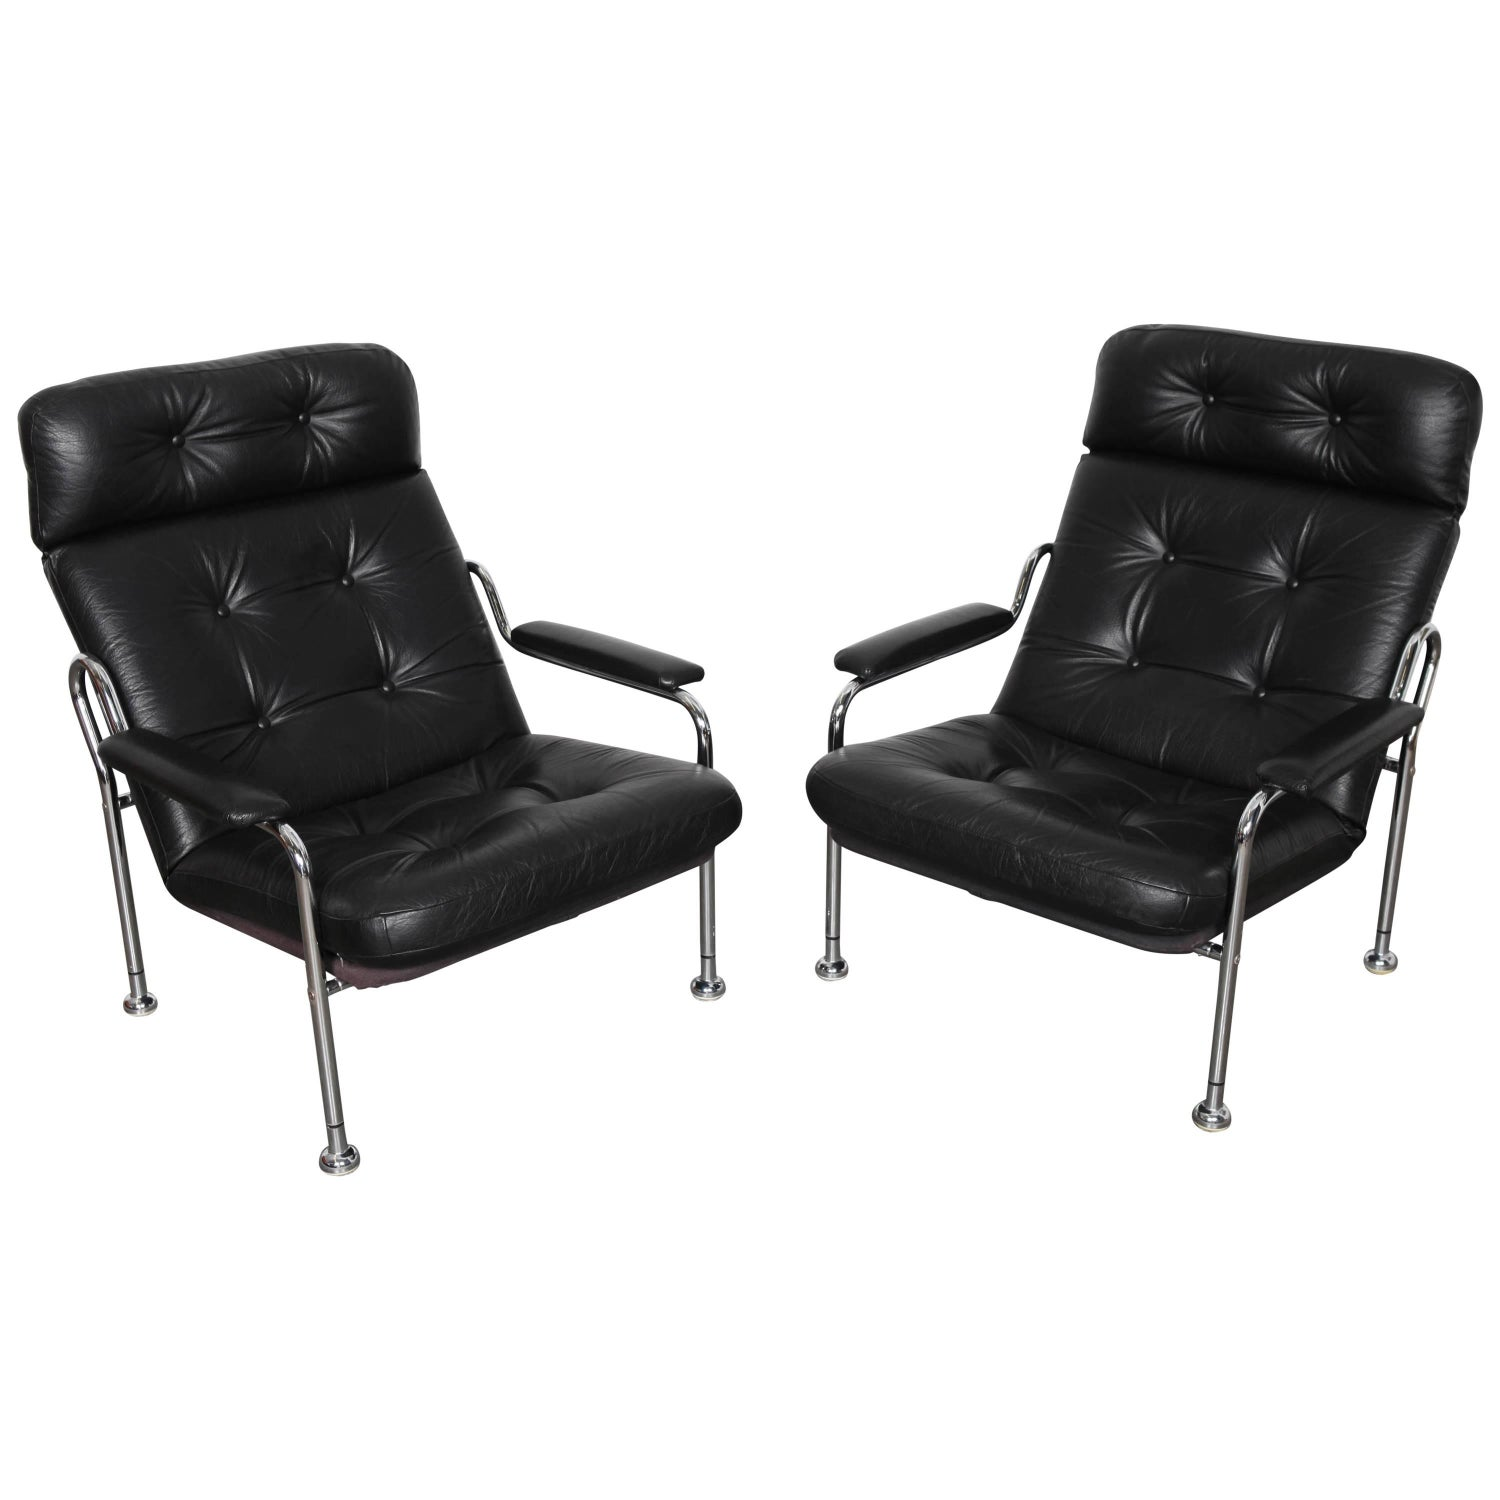 Peruvian Black Tooled Leather Folding Chairs Pair circa 1950 at